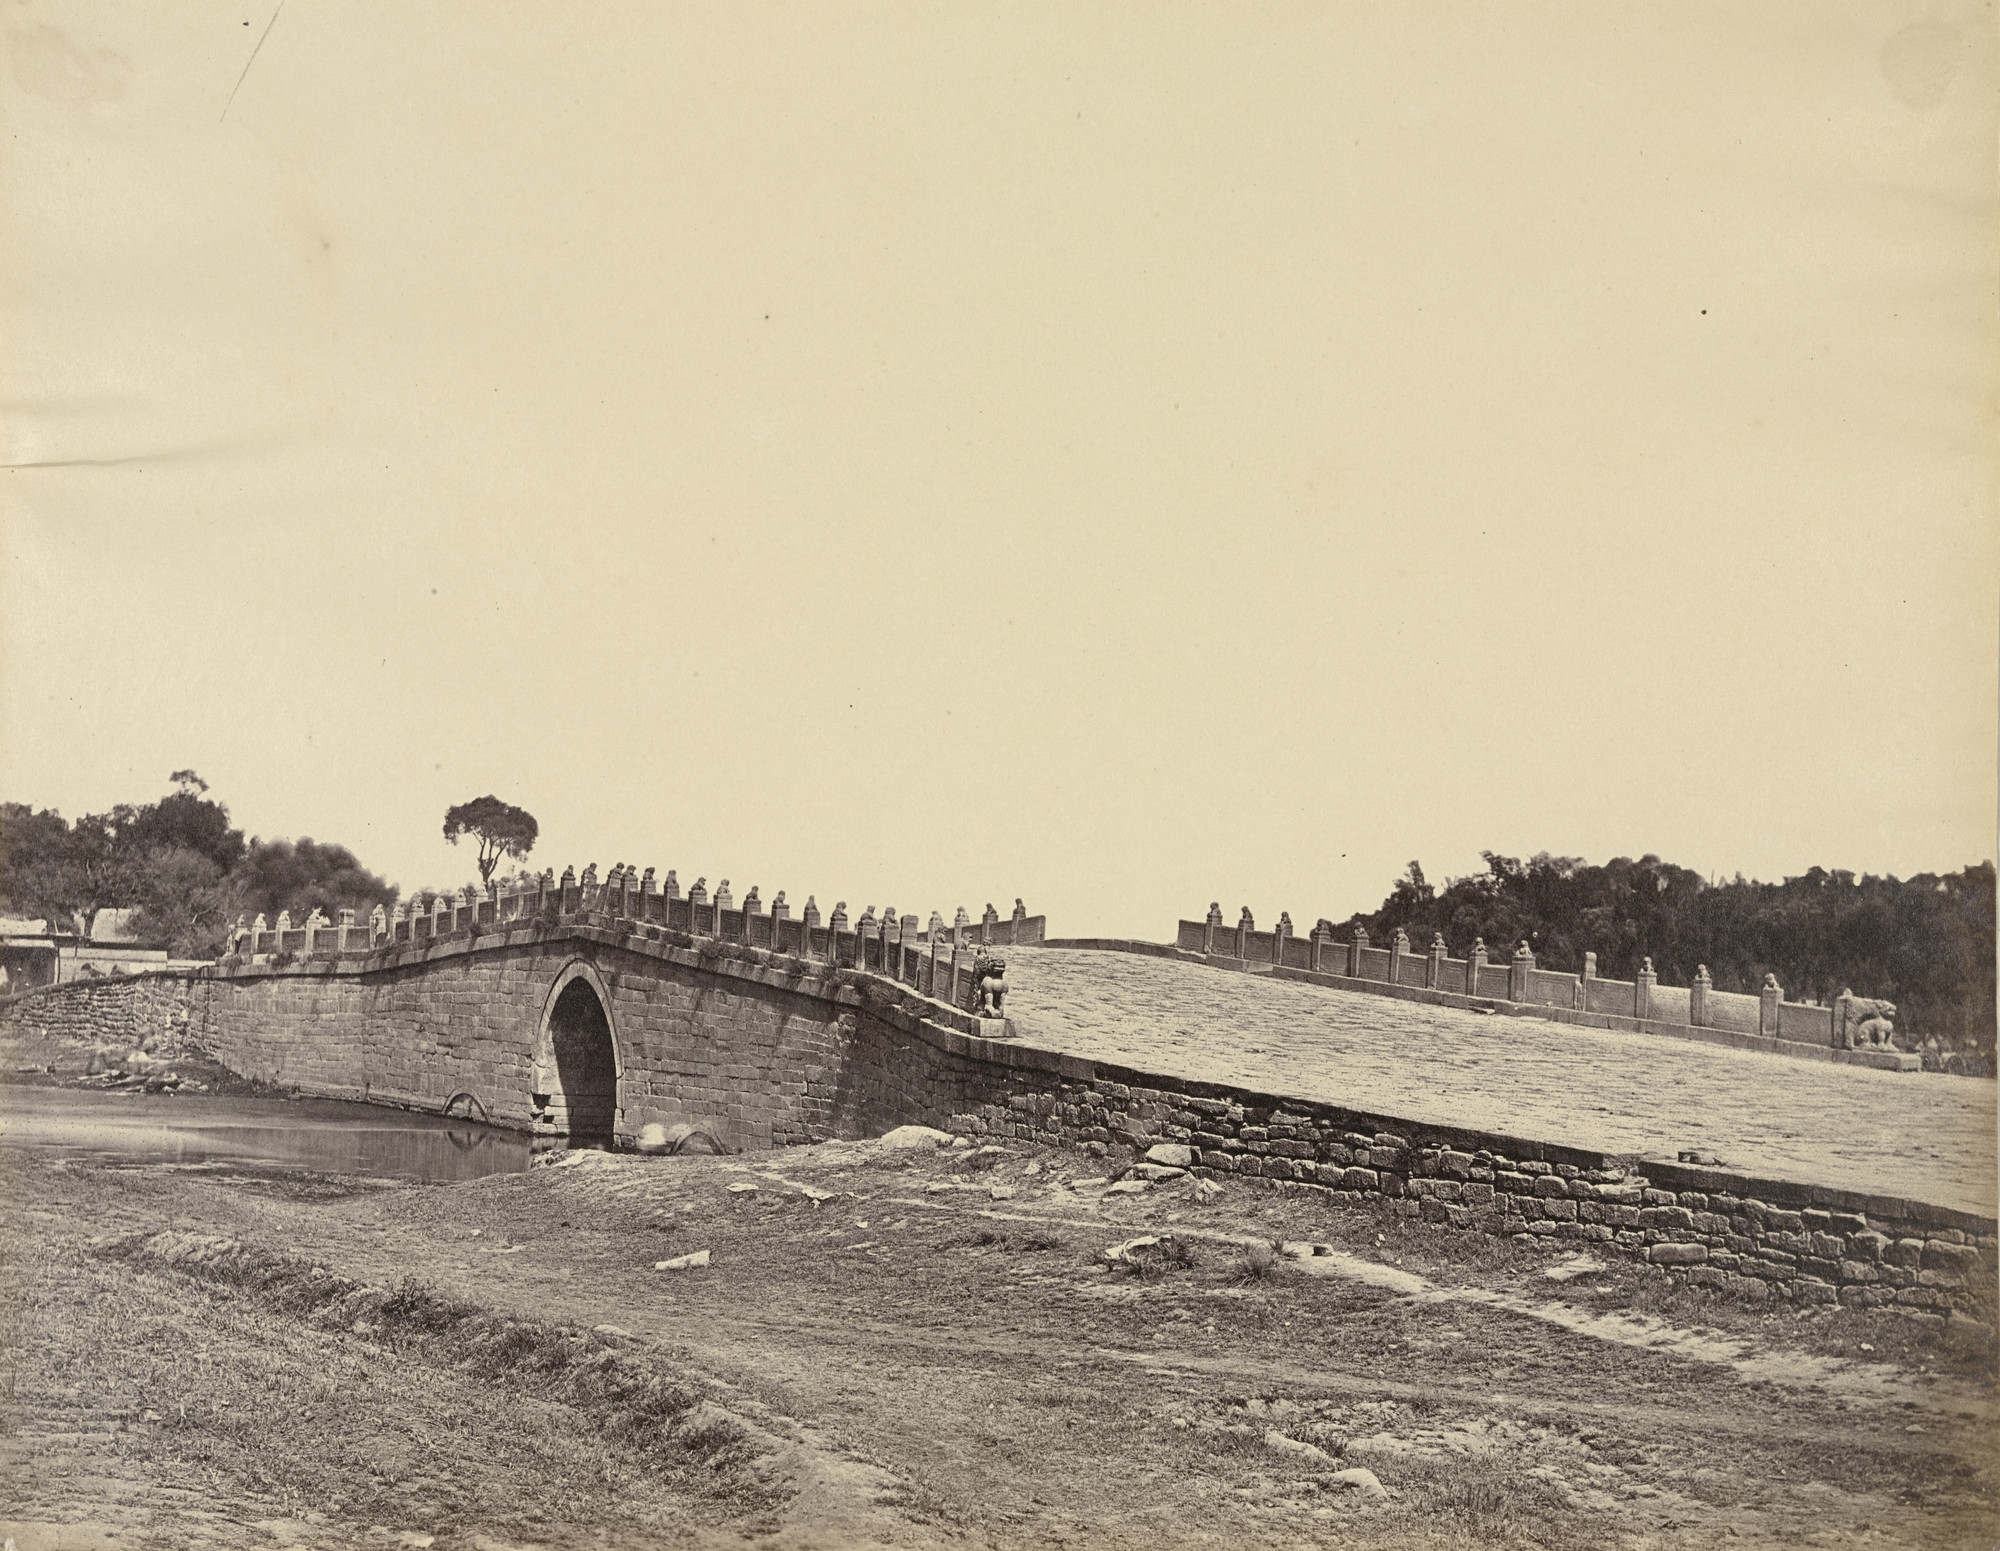 Felice Beato. Bridge of Palichian, the Scene of the Fight with Imperial Chinese Troops. September 21, 1860